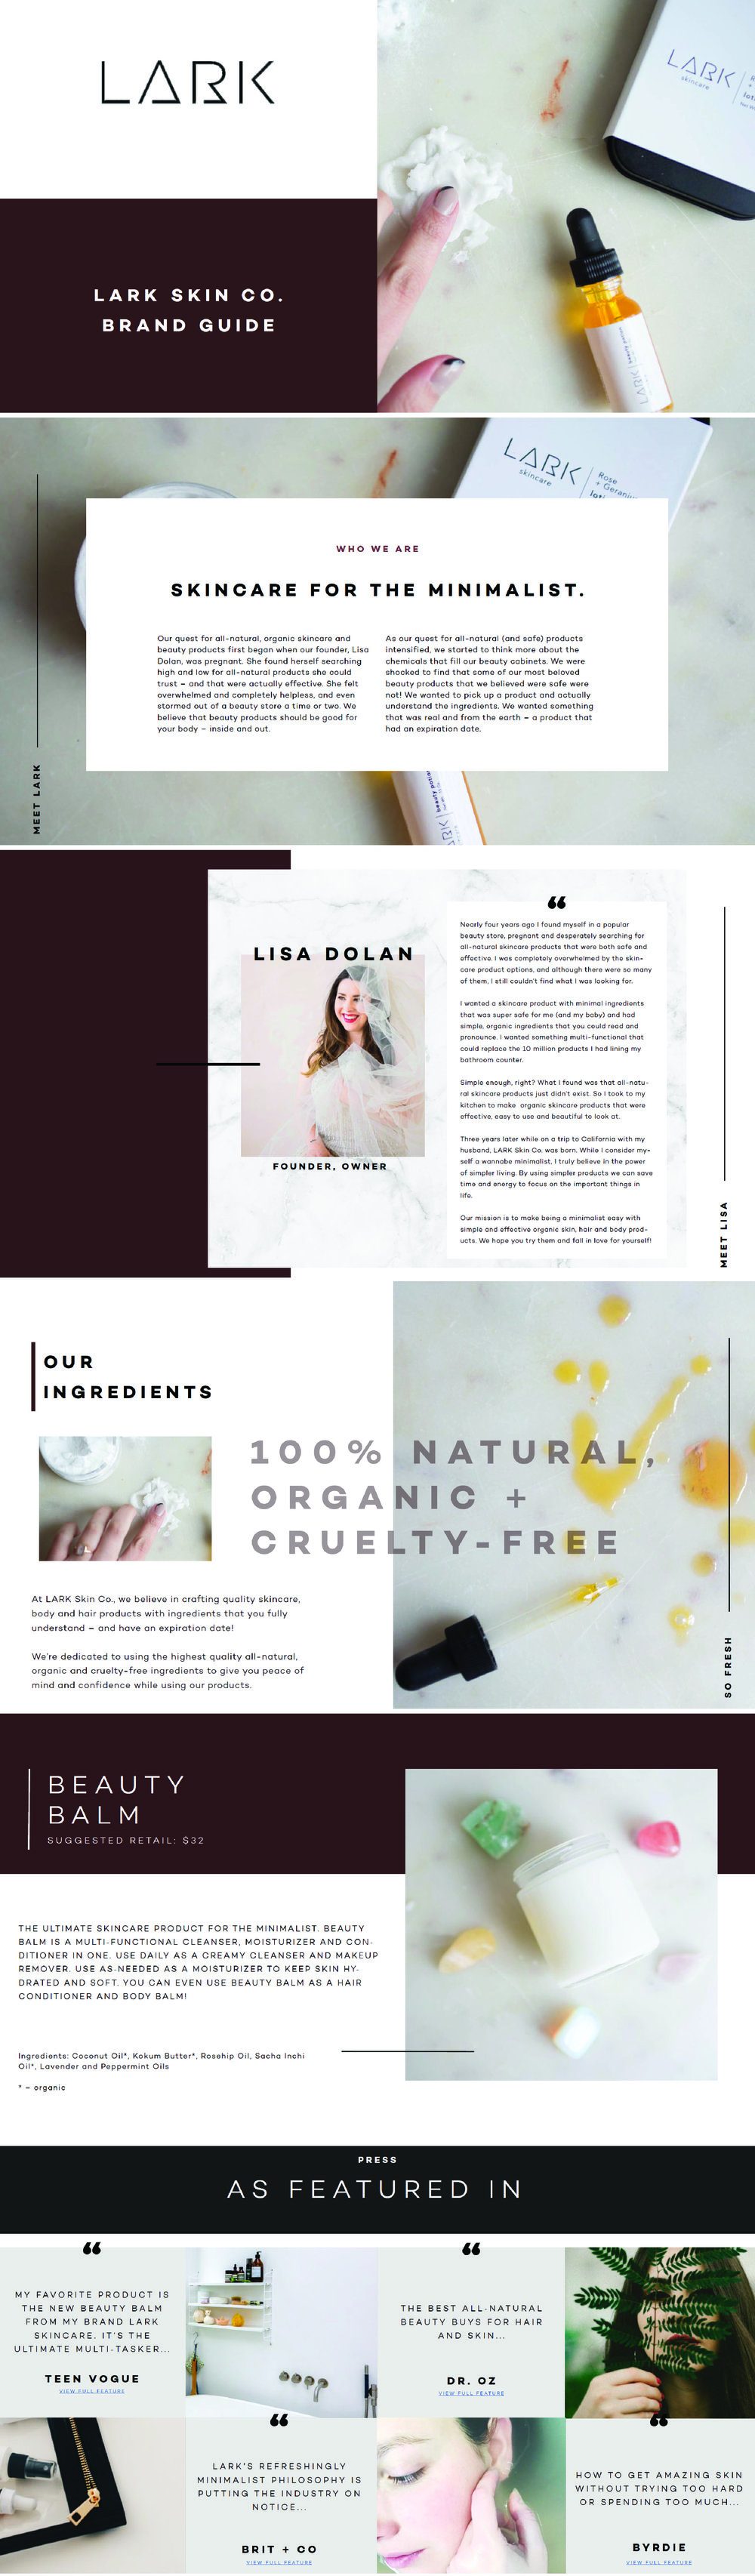 LARK Skin Co. Brand Guide | Print Design Work